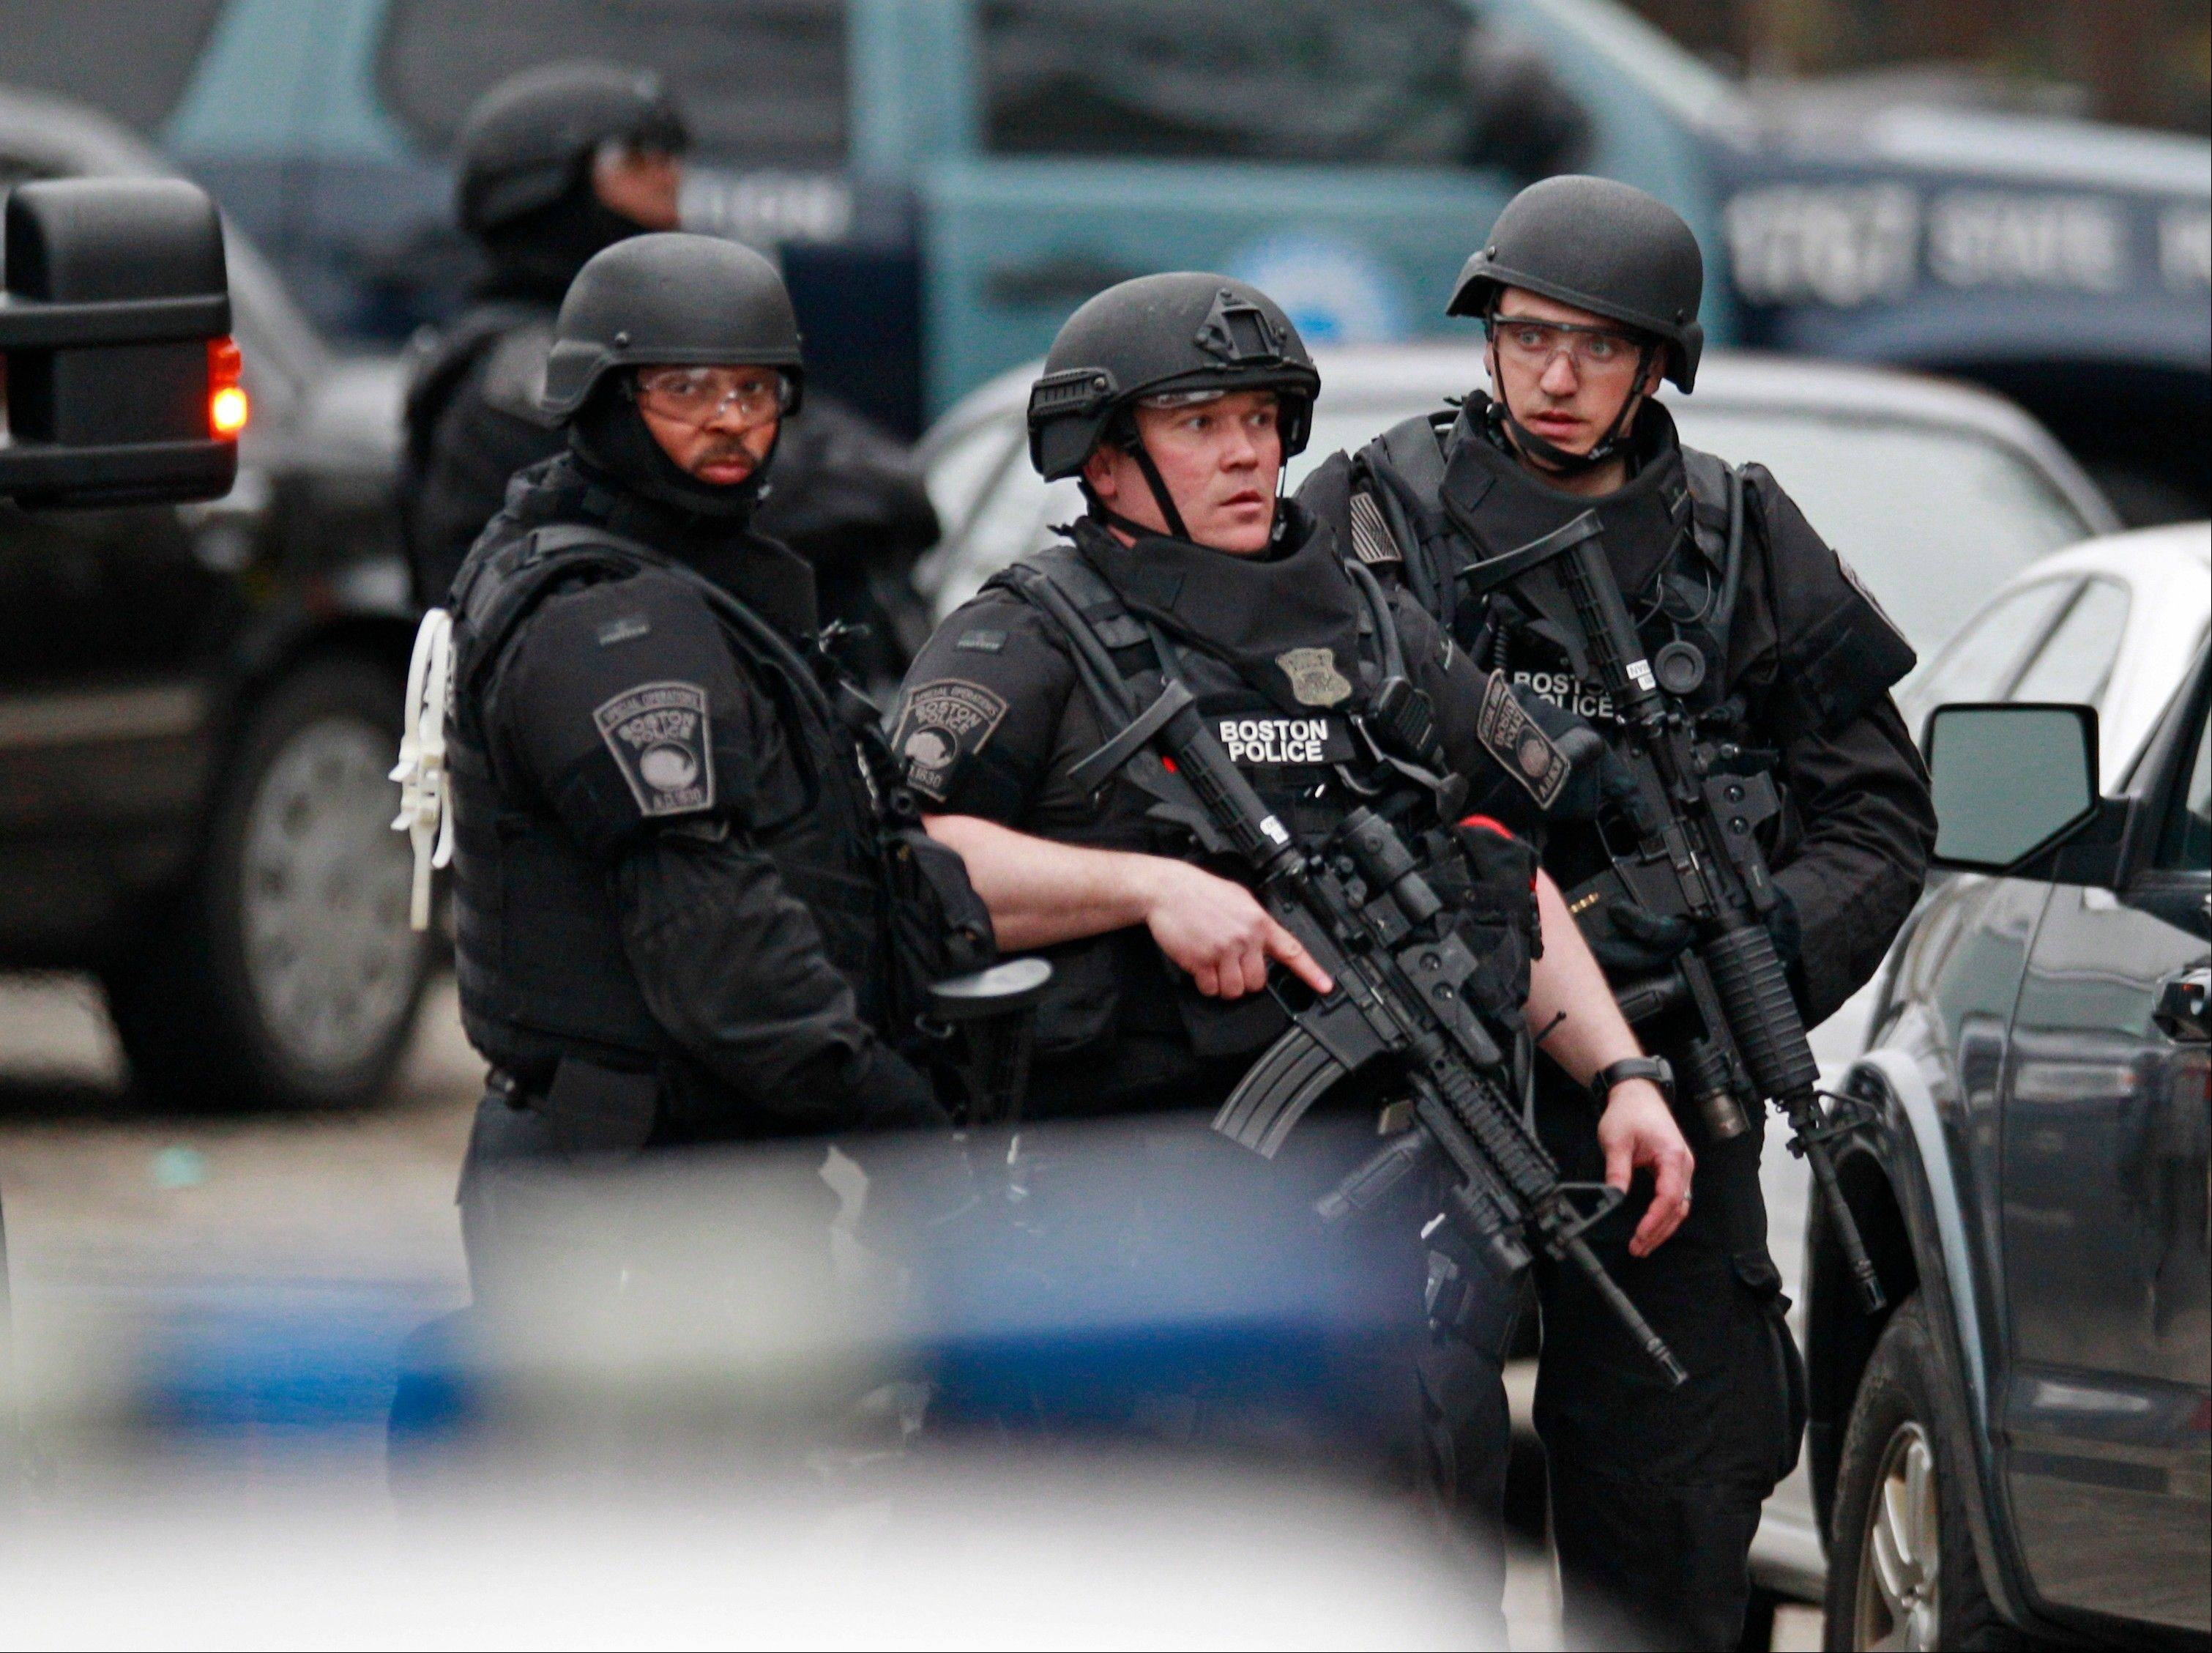 Police in tactical gear surround an apartment building while looking for a suspect in the Boston Marathon bombings in Watertown, Mass., Friday, April 19, 2013. The bombs that blew up seconds apart near the finish line of the Boston Marathon left the streets spattered with blood and glass, and gaping questions of who chose to attack and why.